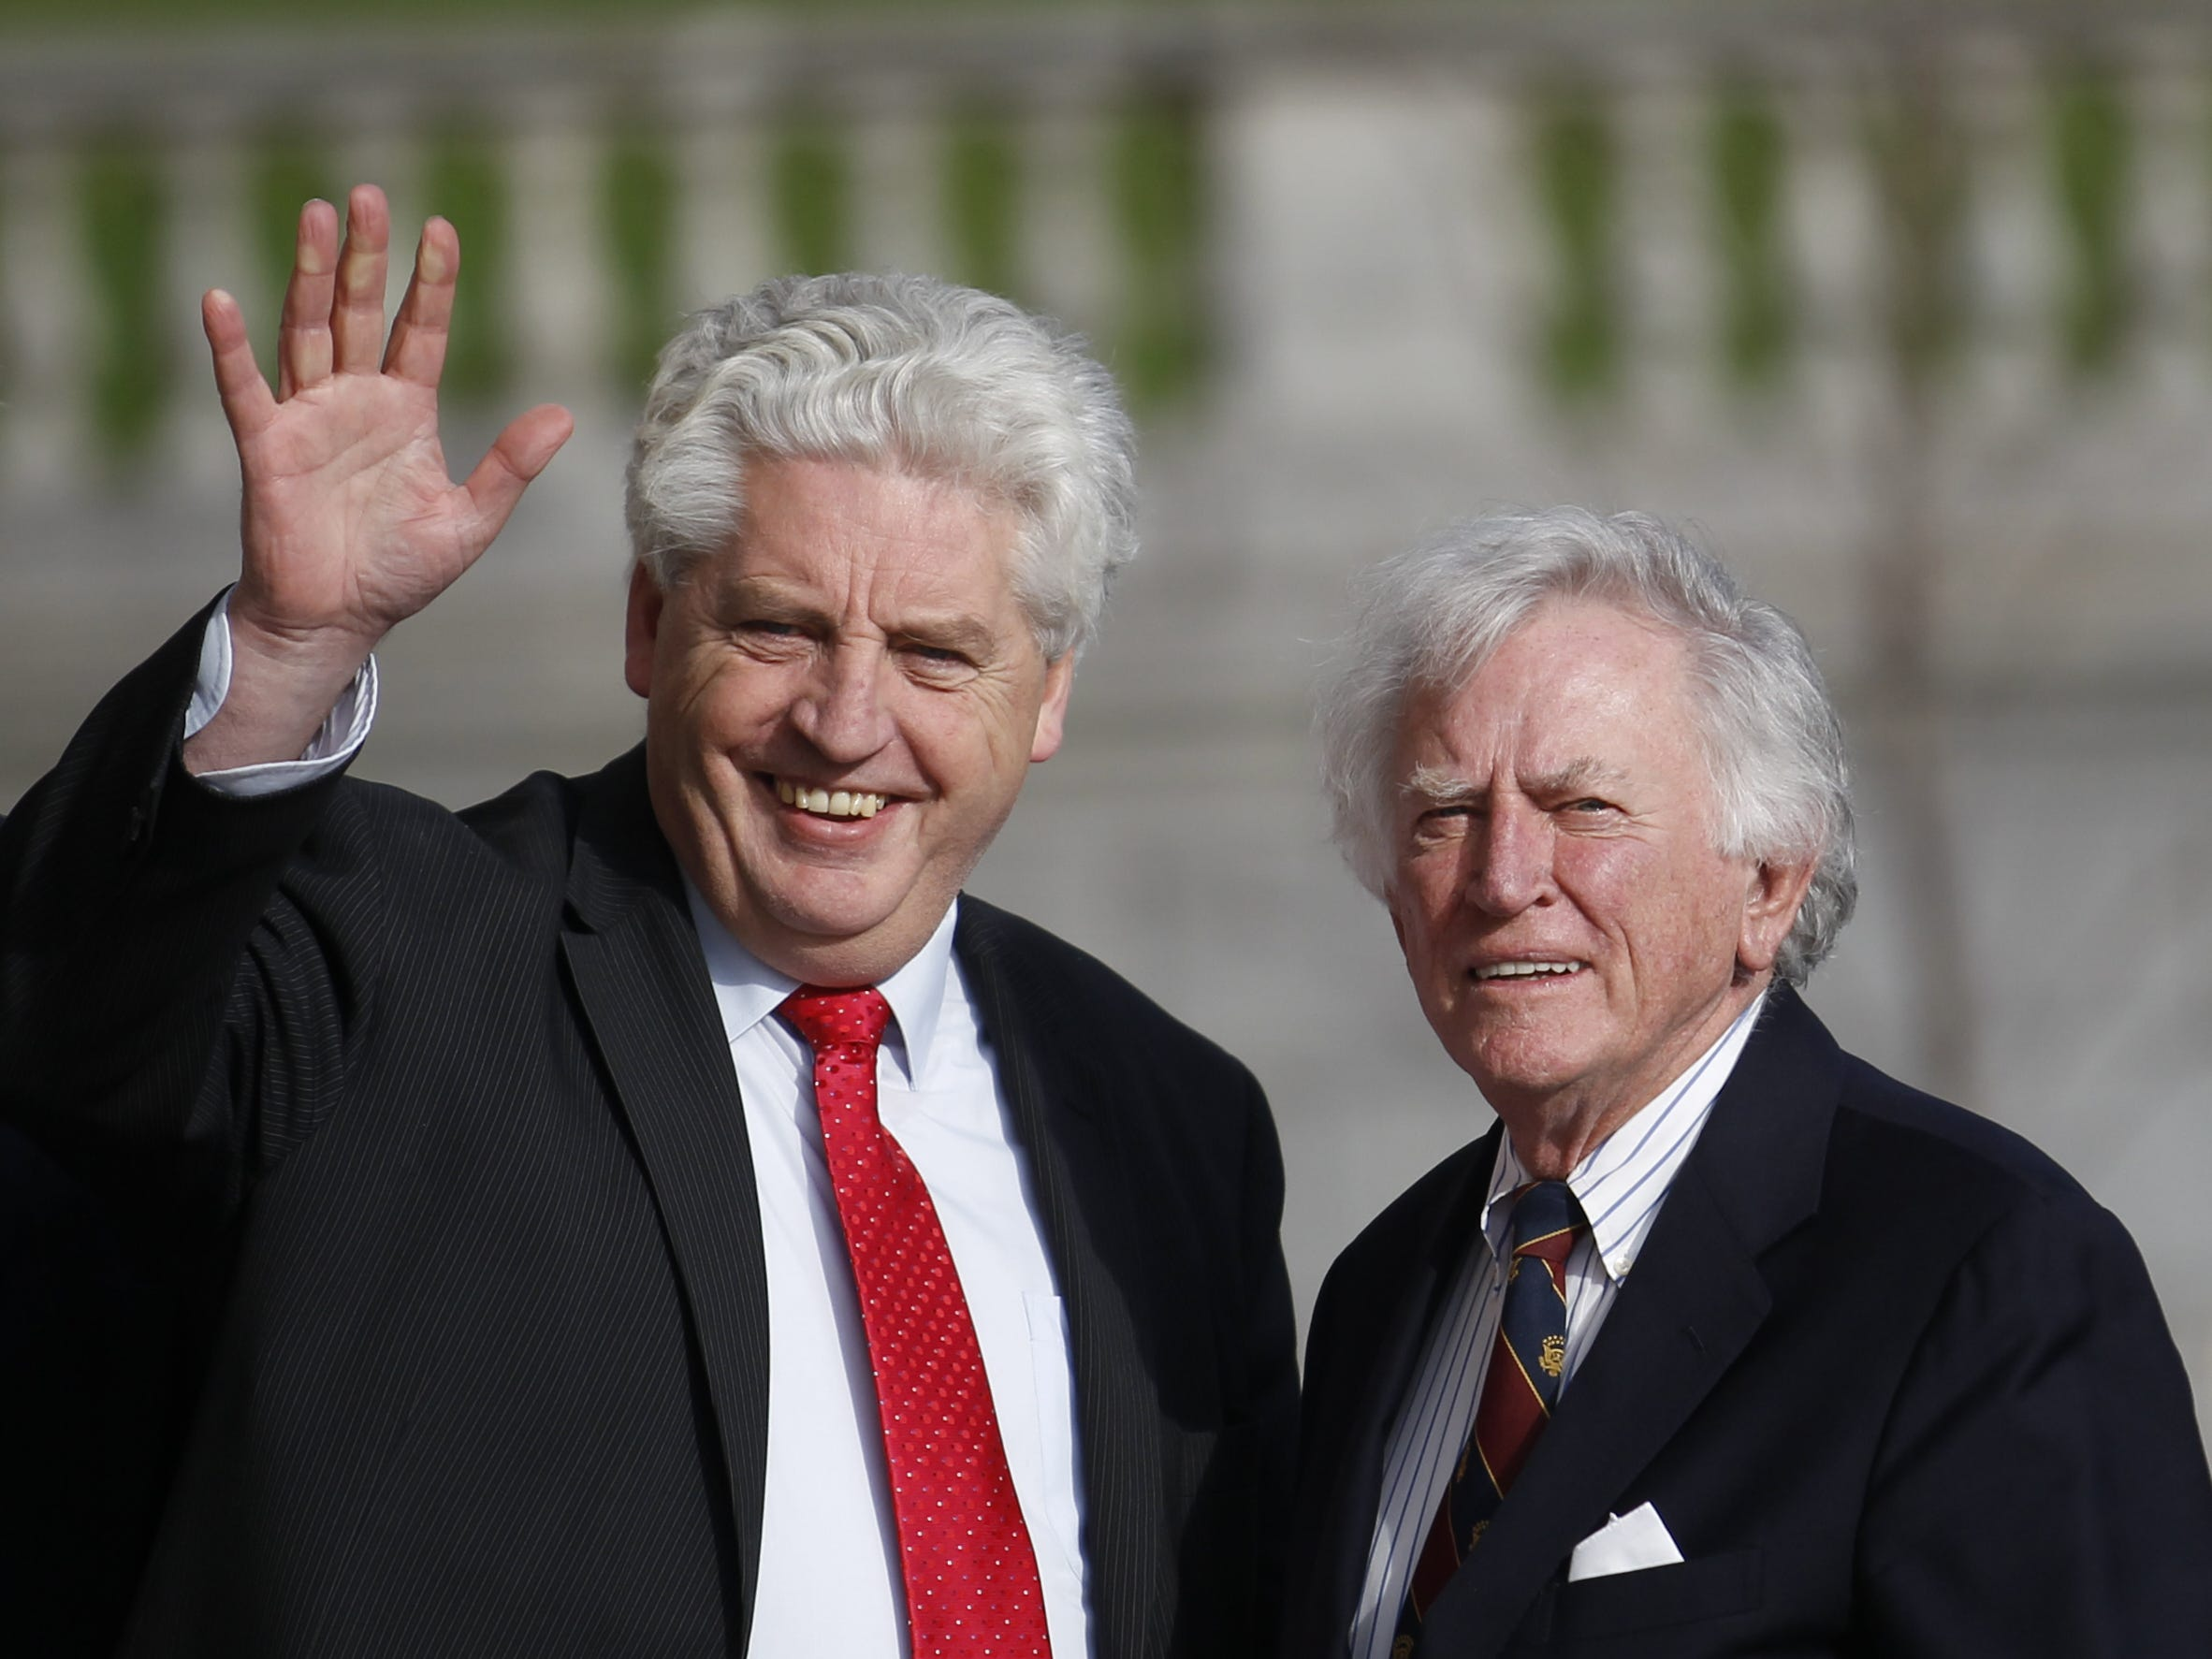 Gary Hart, right (Washington D.C.): Author and attorney. Professor at the University of Colorado at Denver. Formerly, U.S. Special Envoy for Northern Ireland, Co-chairman of the U.S. Commission on National Security for the 21st Century, and two-term United States Senator from Colorado.